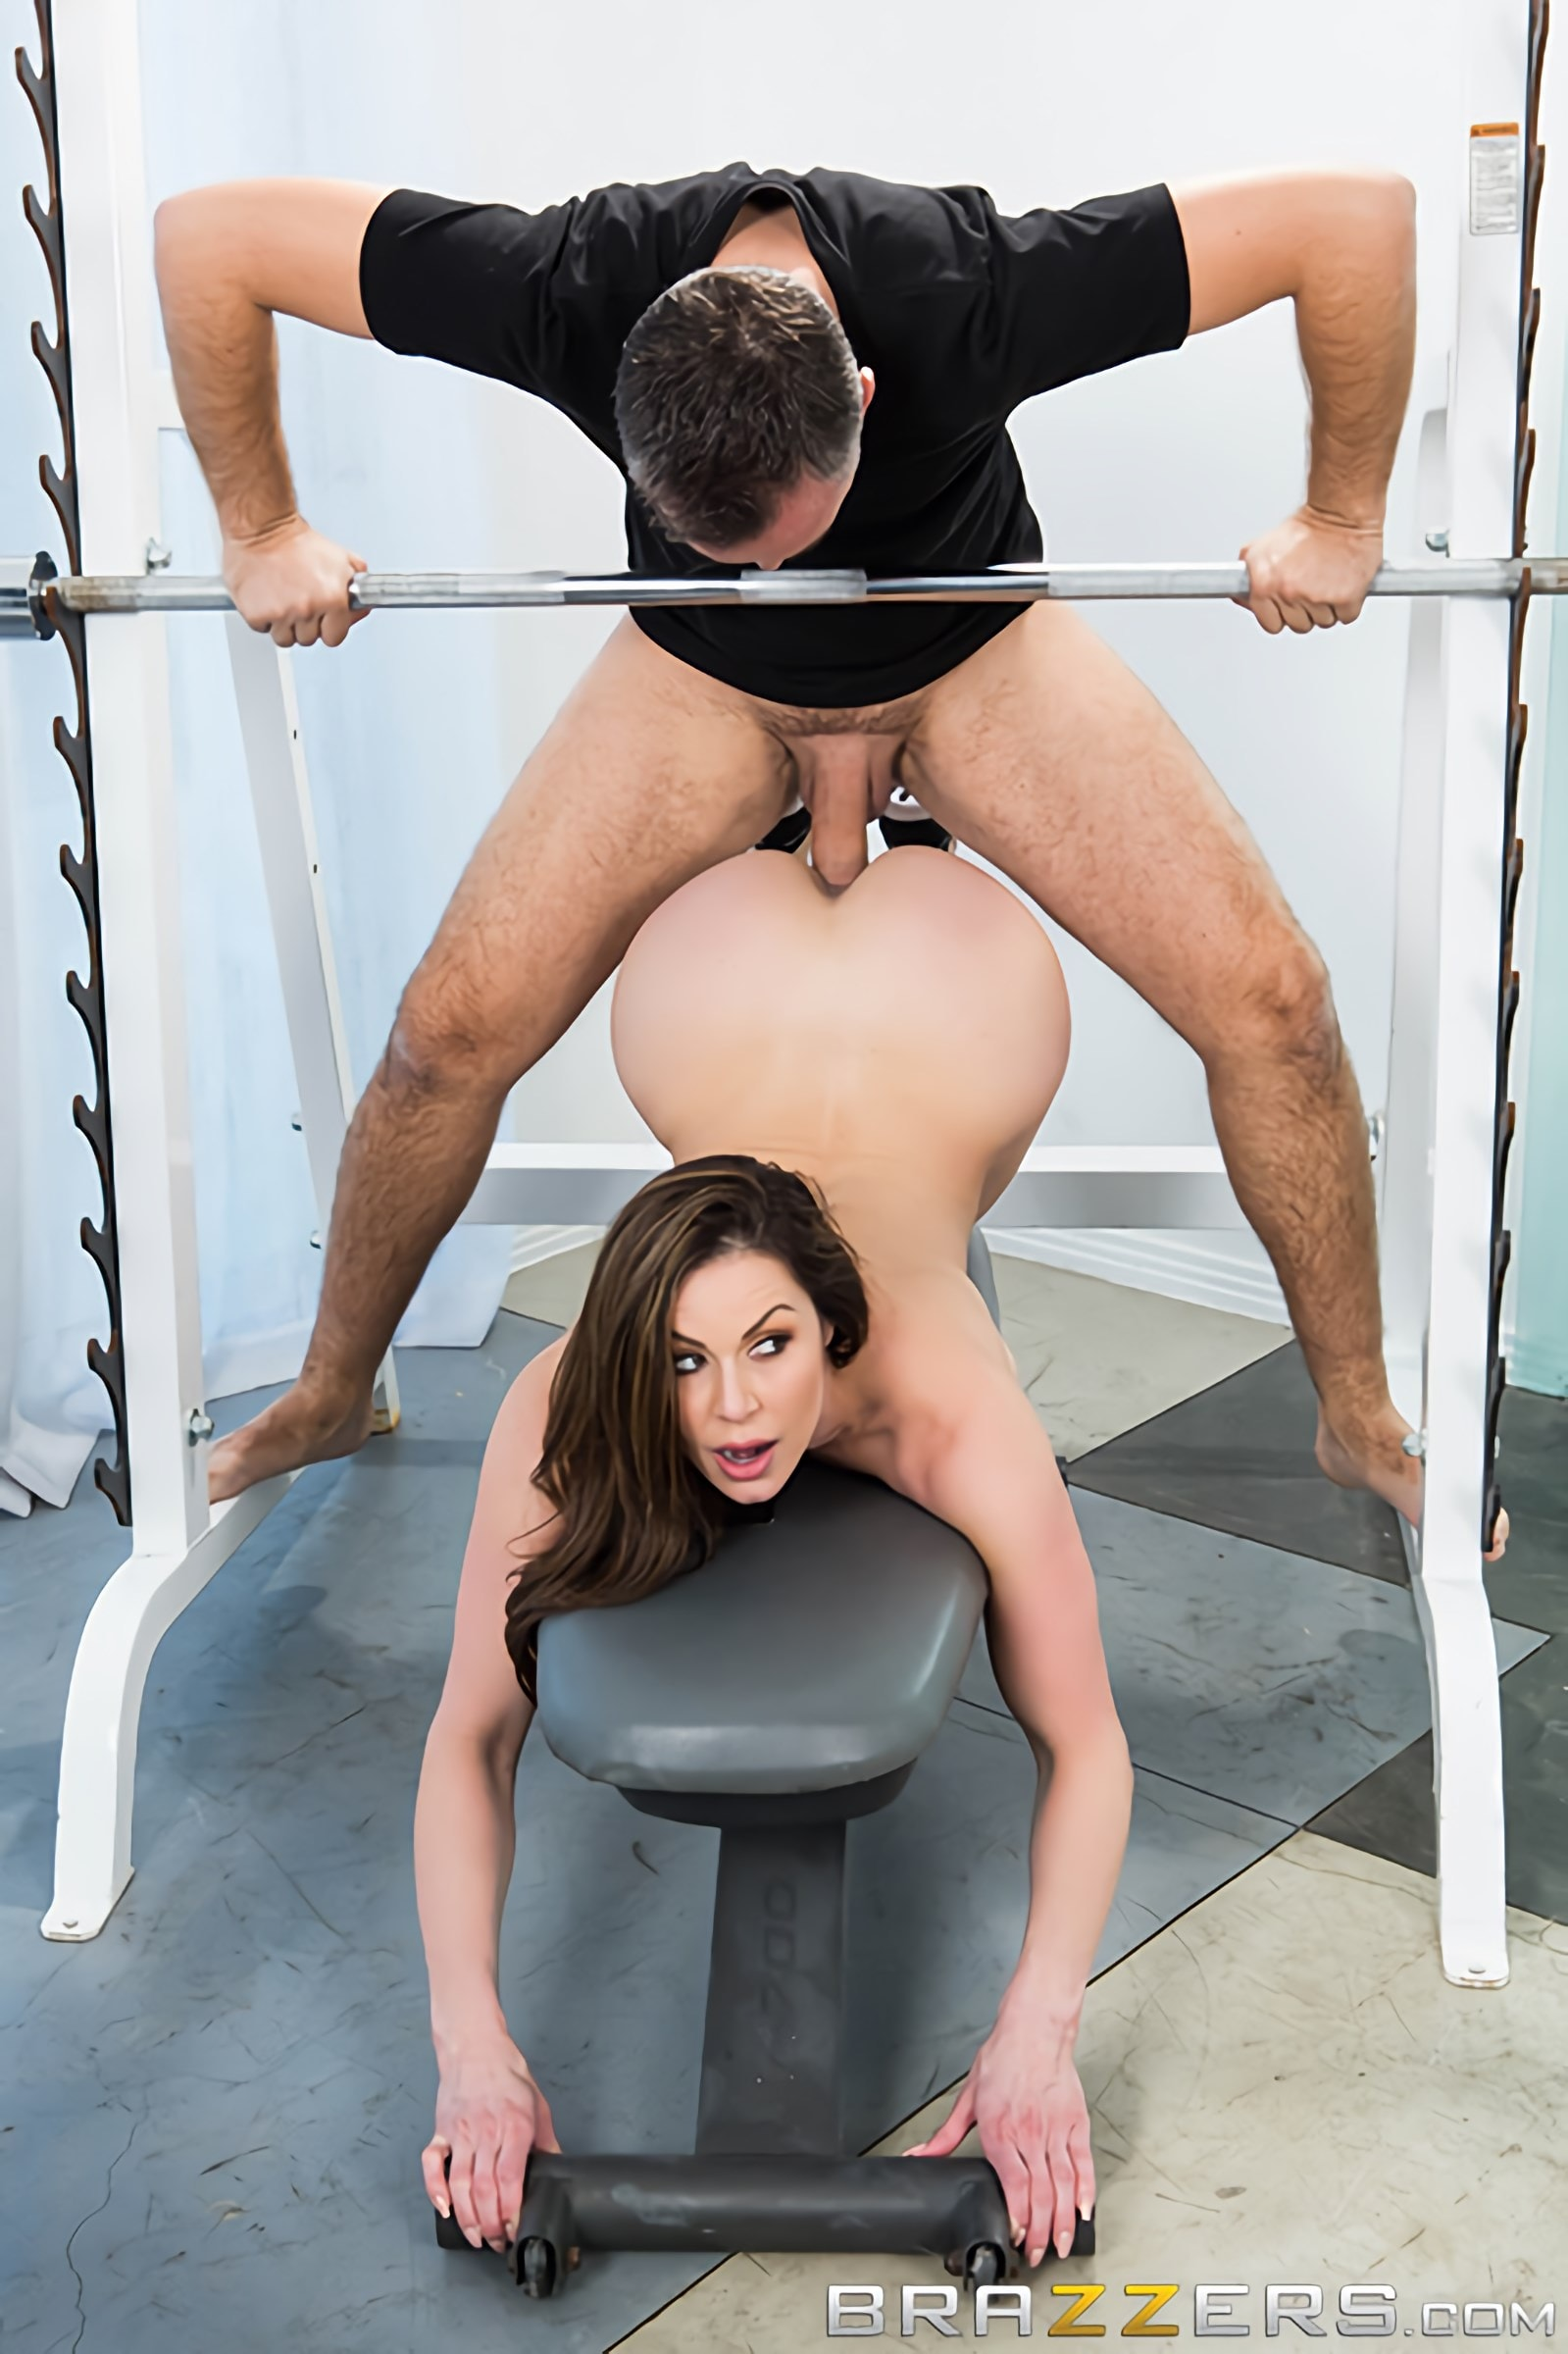 Brazzers 'Personal Trainers- Session 1' starring Kendra Lust (Photo 5)